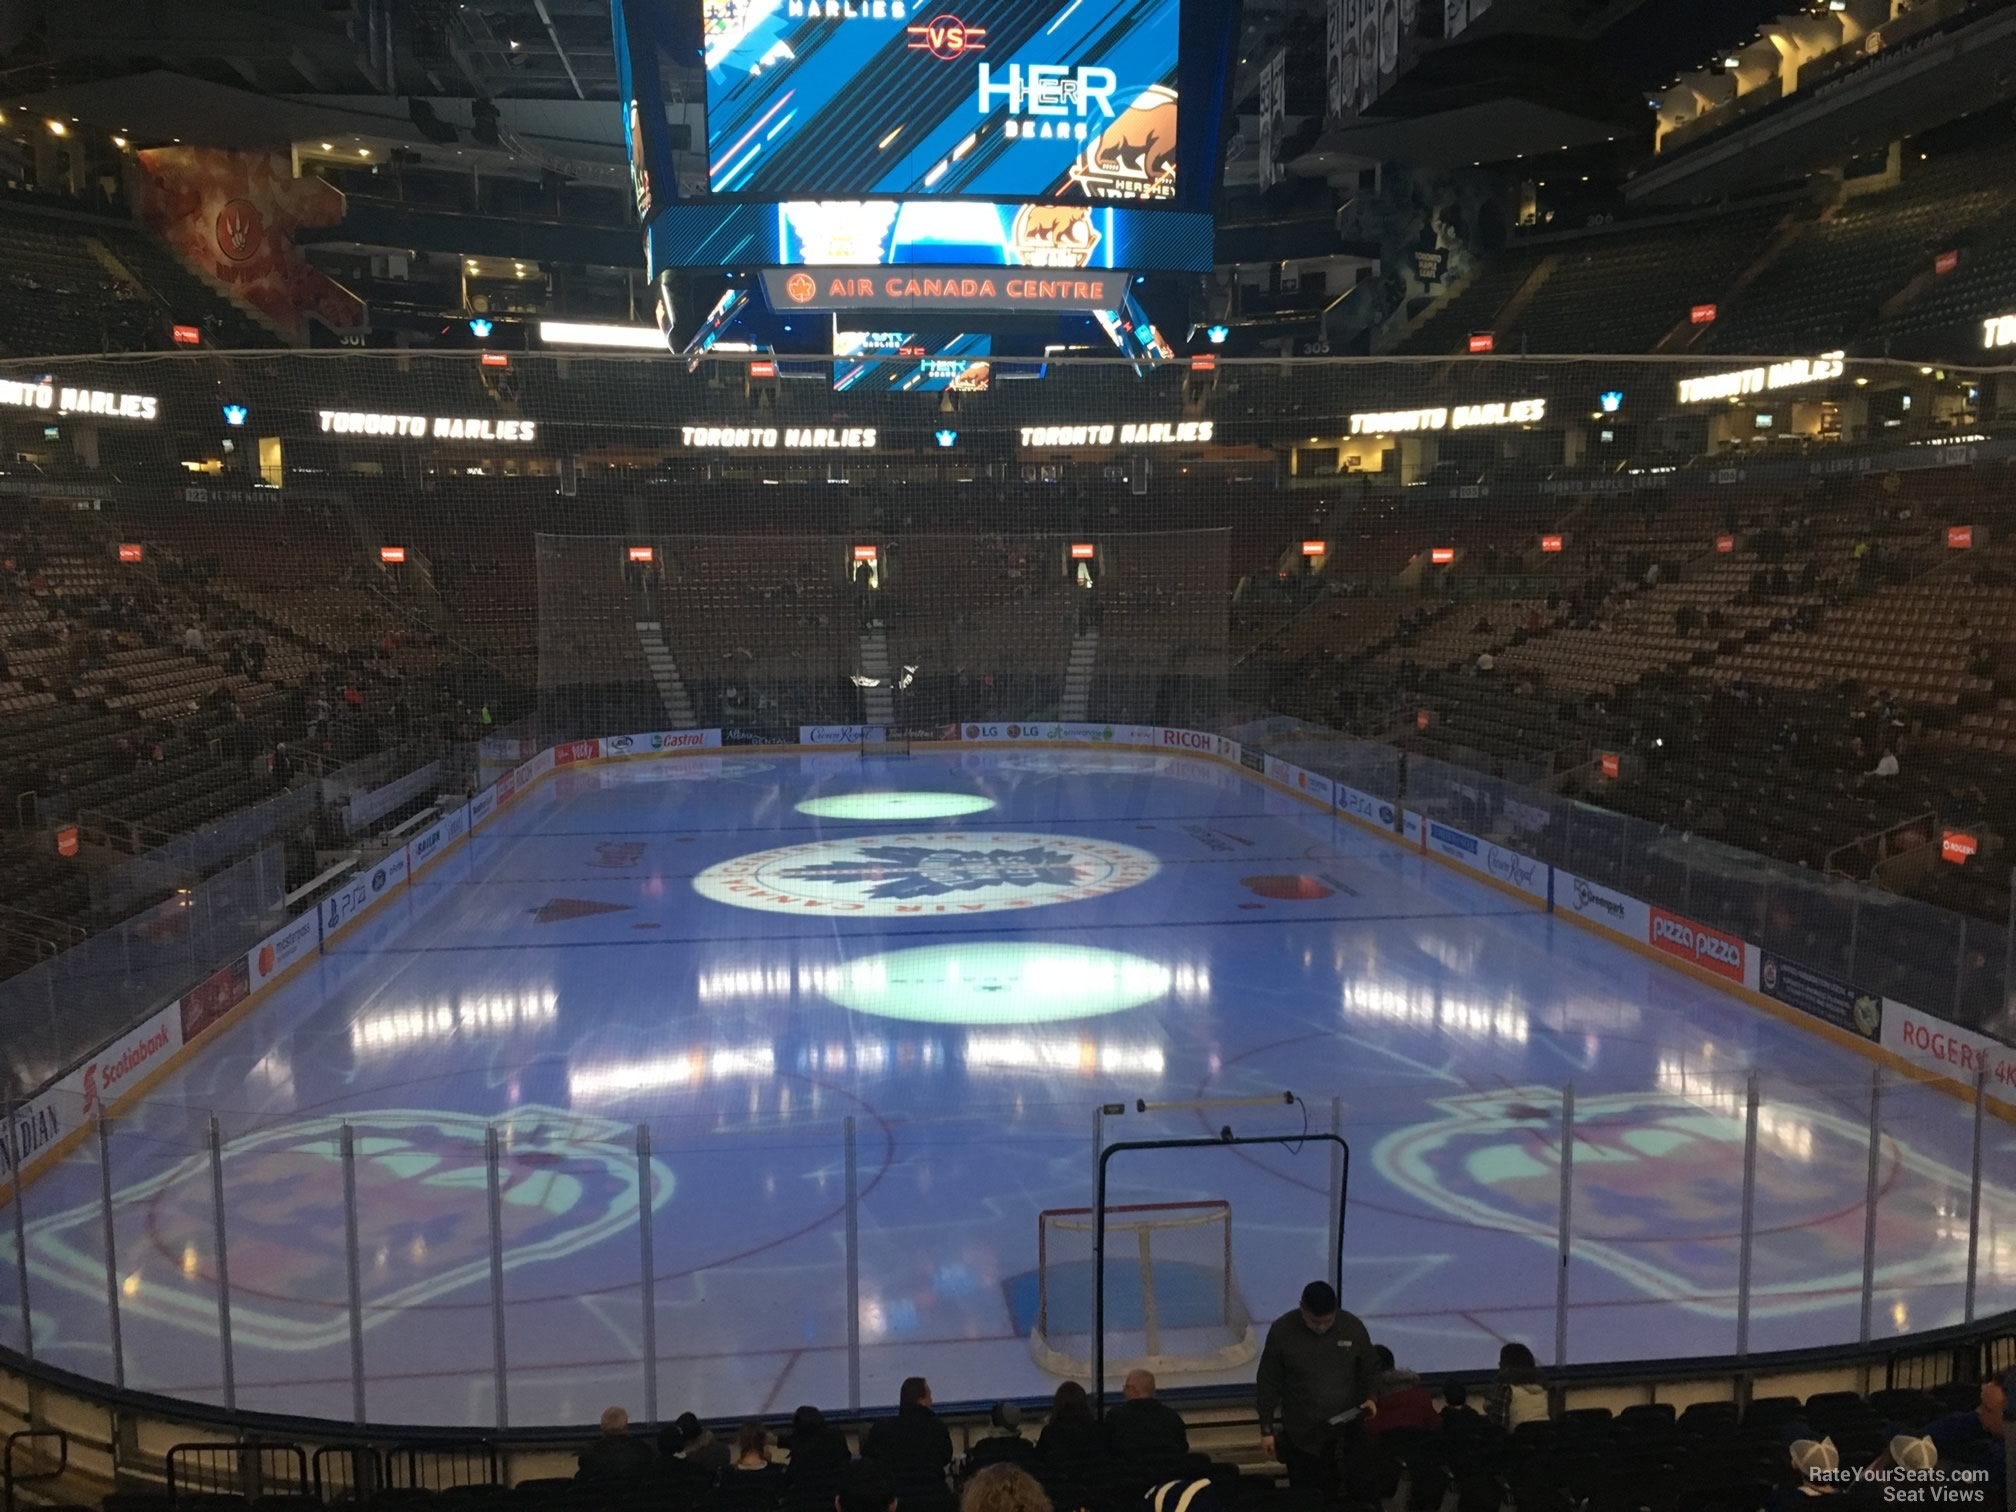 Toronto Maple Leafs Seat View for Scotiabank Arena Section 114, Row 20